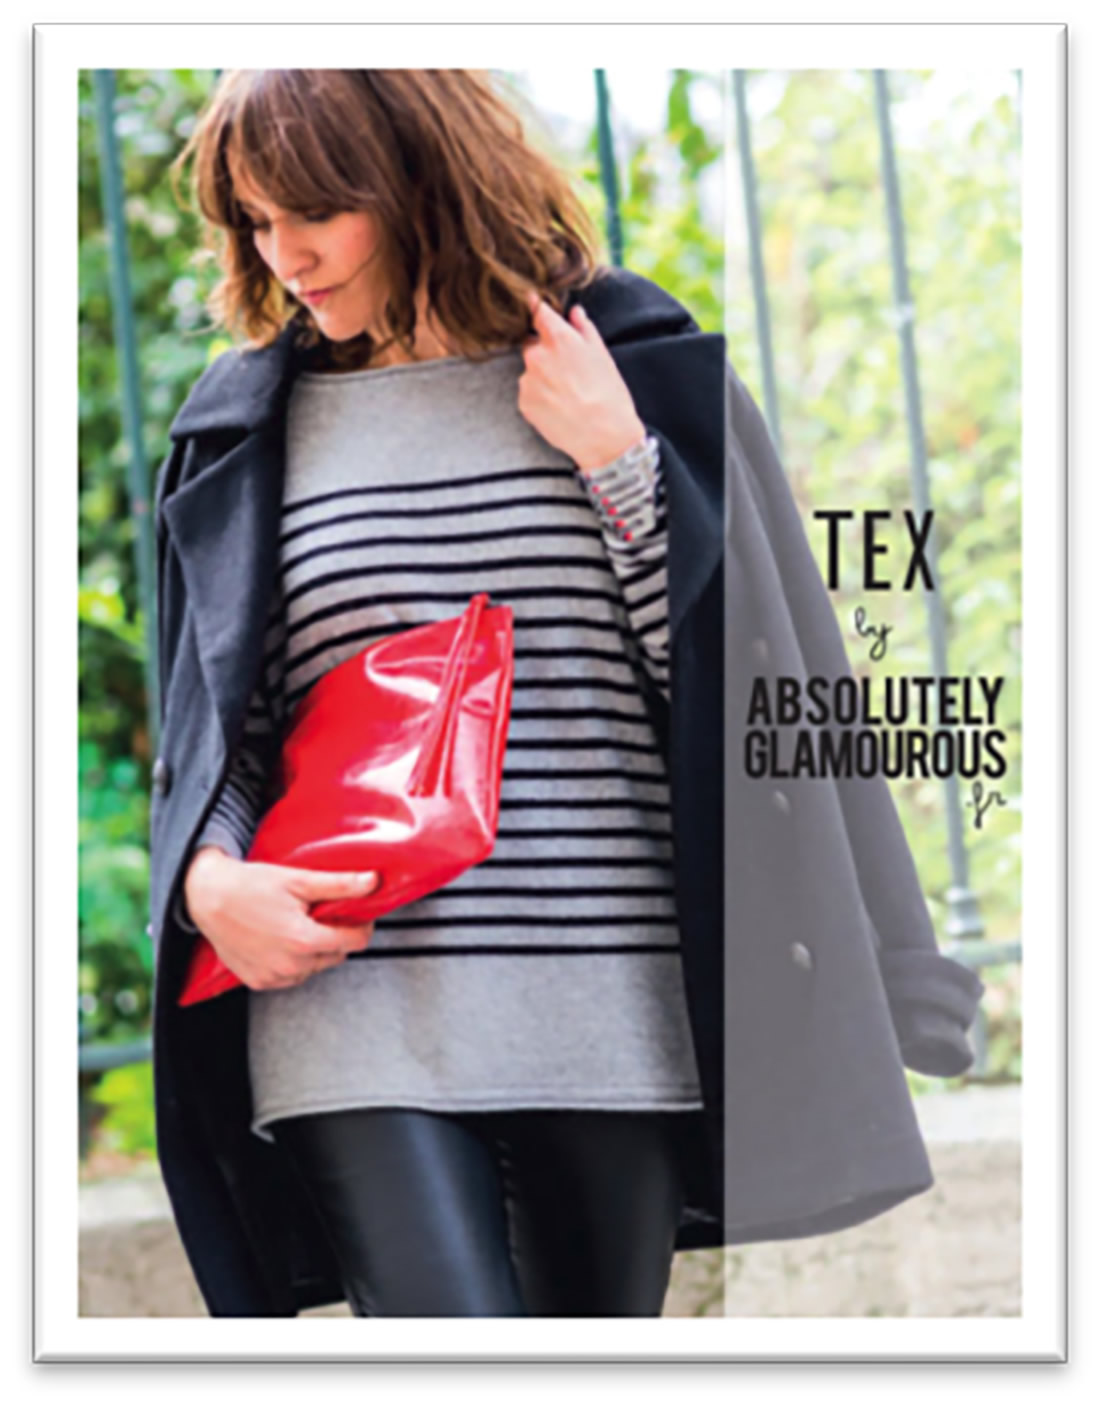 20.1 Nouvelle Capsule Tex x Absolutely Glamorous copie